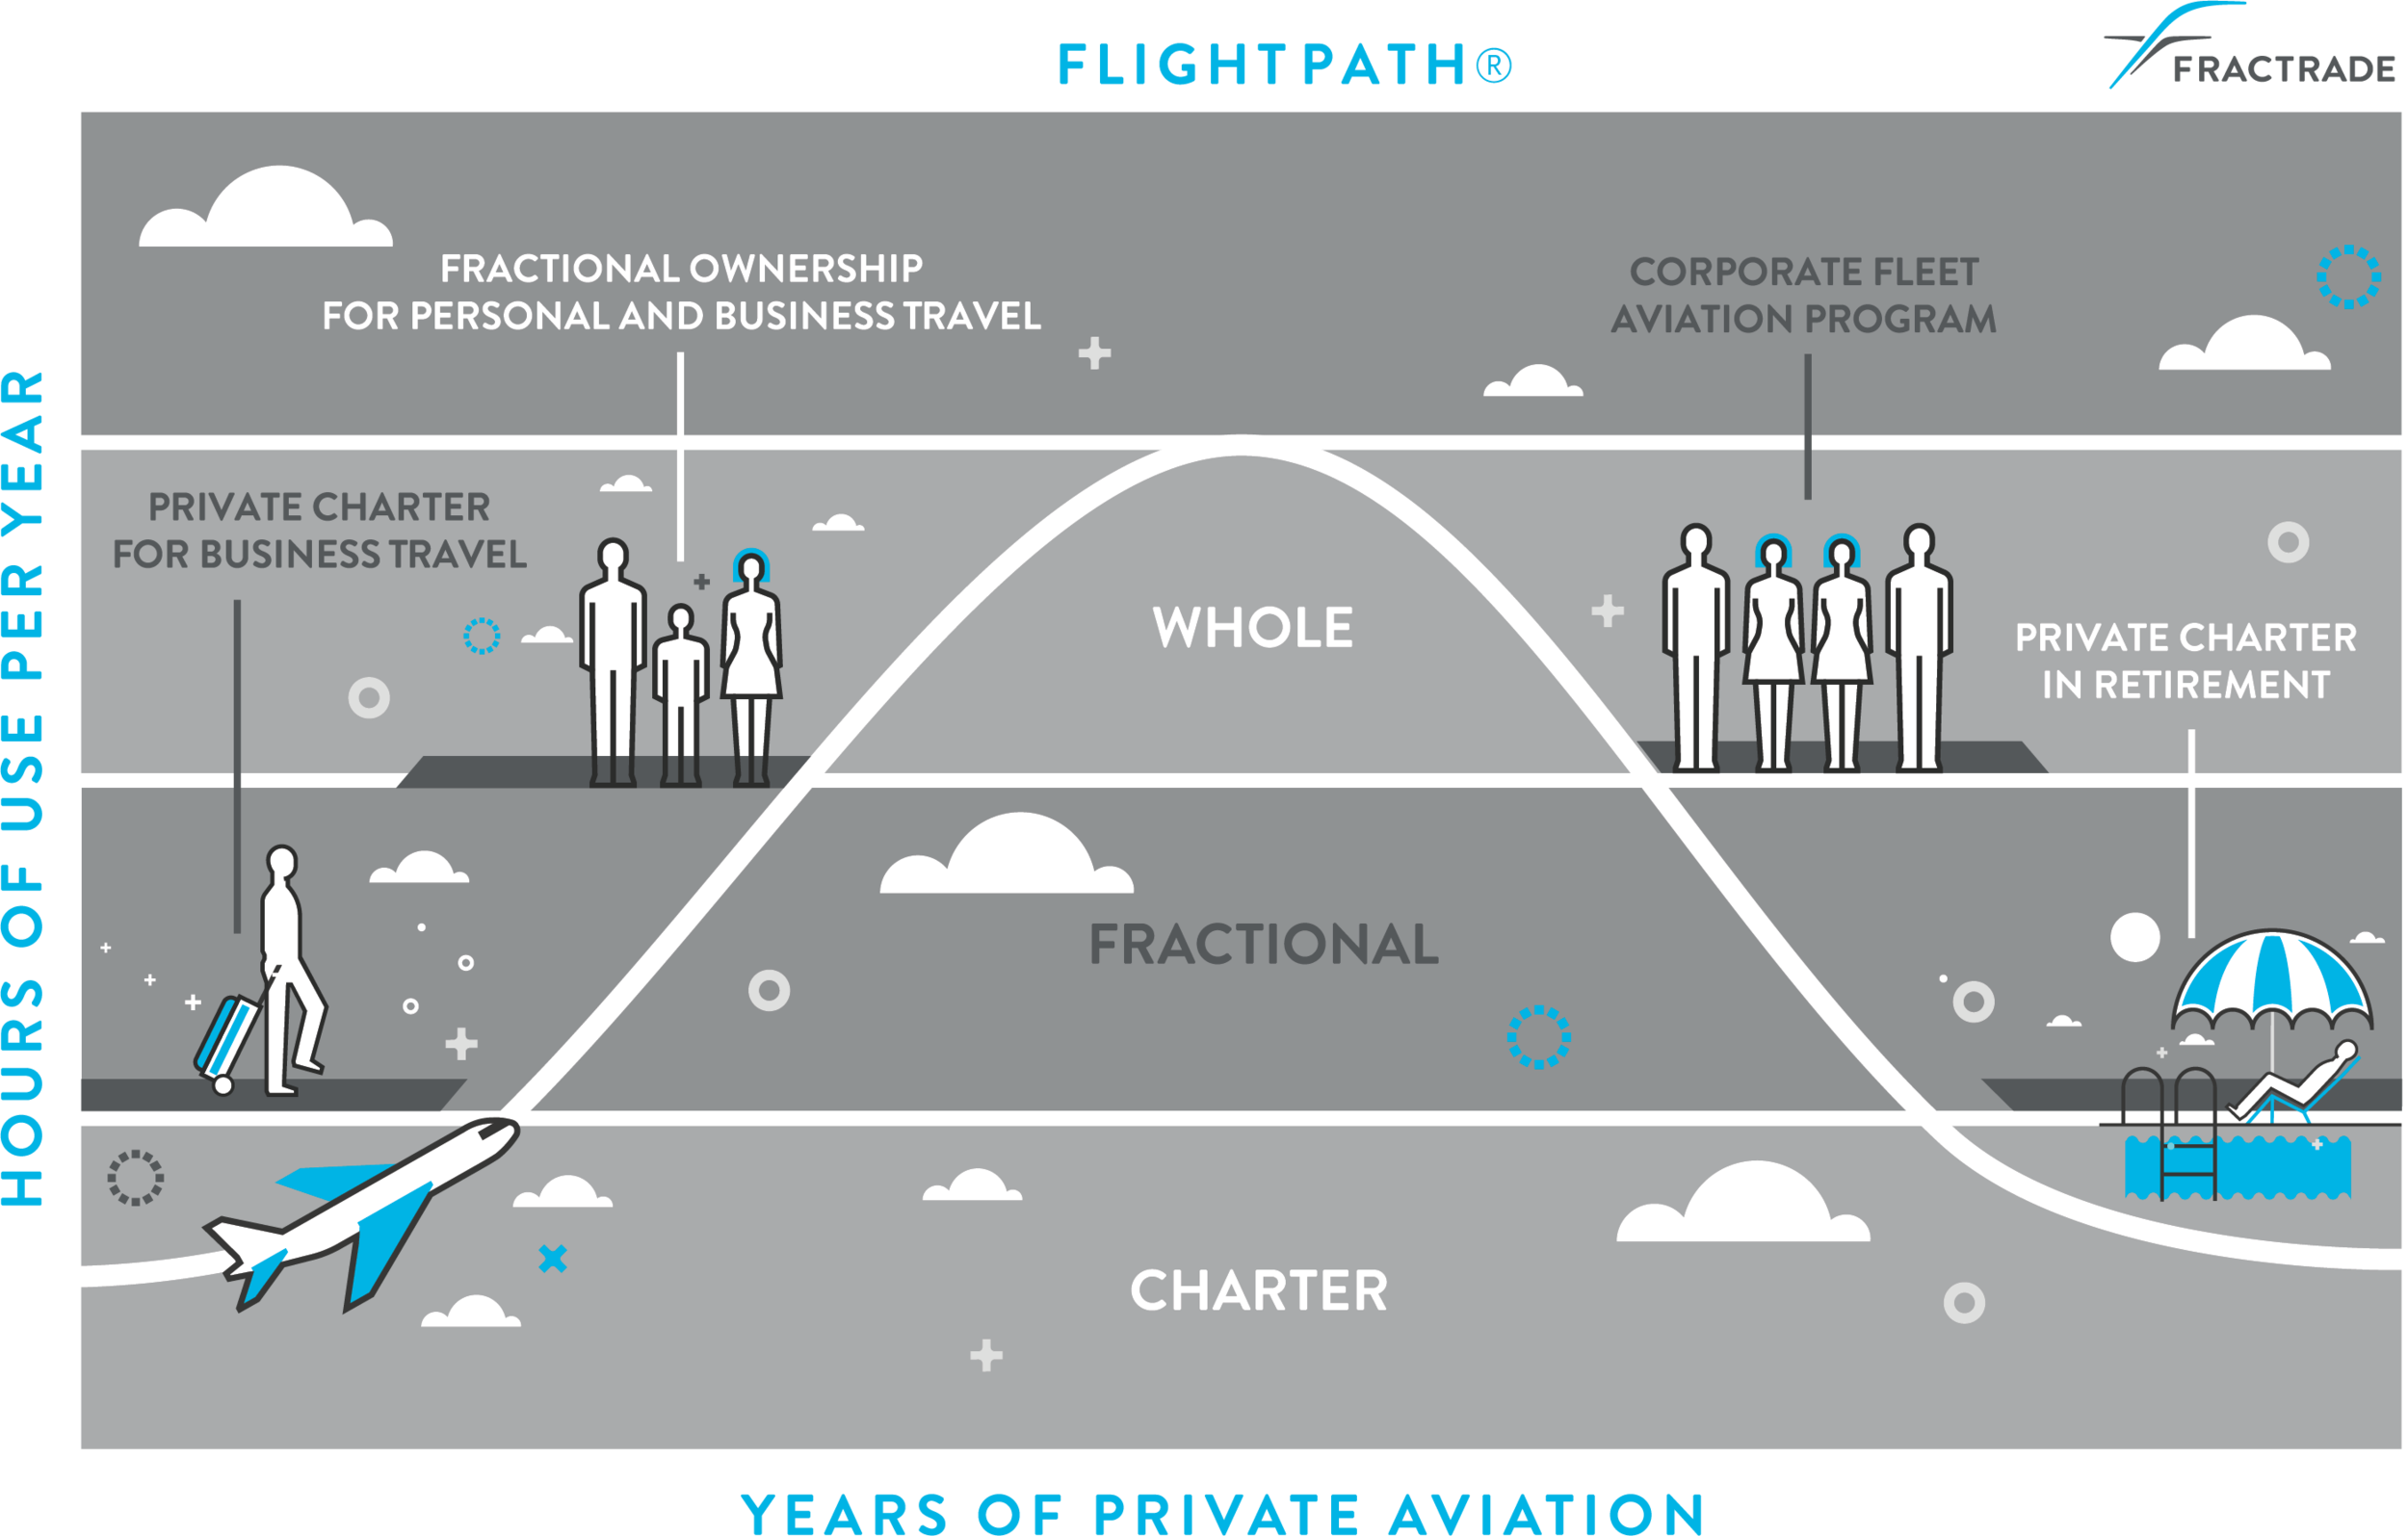 Flightpath enables you to transition between Charter Flights, Fractional Ownership and Whole Ownership quickly, efficiently and safely, equipped with knowledge and guidance you need from your Aviation Advocate, Fractrade to make informed decisions.